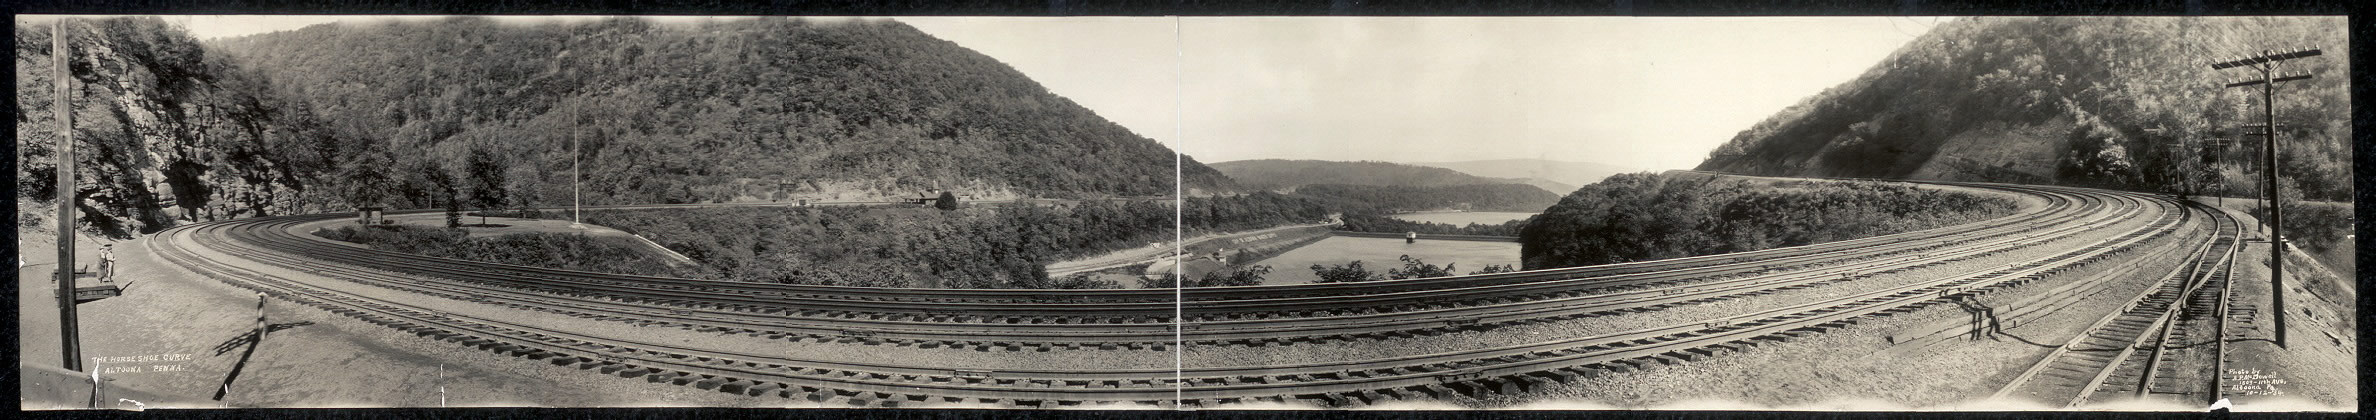 Panorama view of the Horseshoe Curve